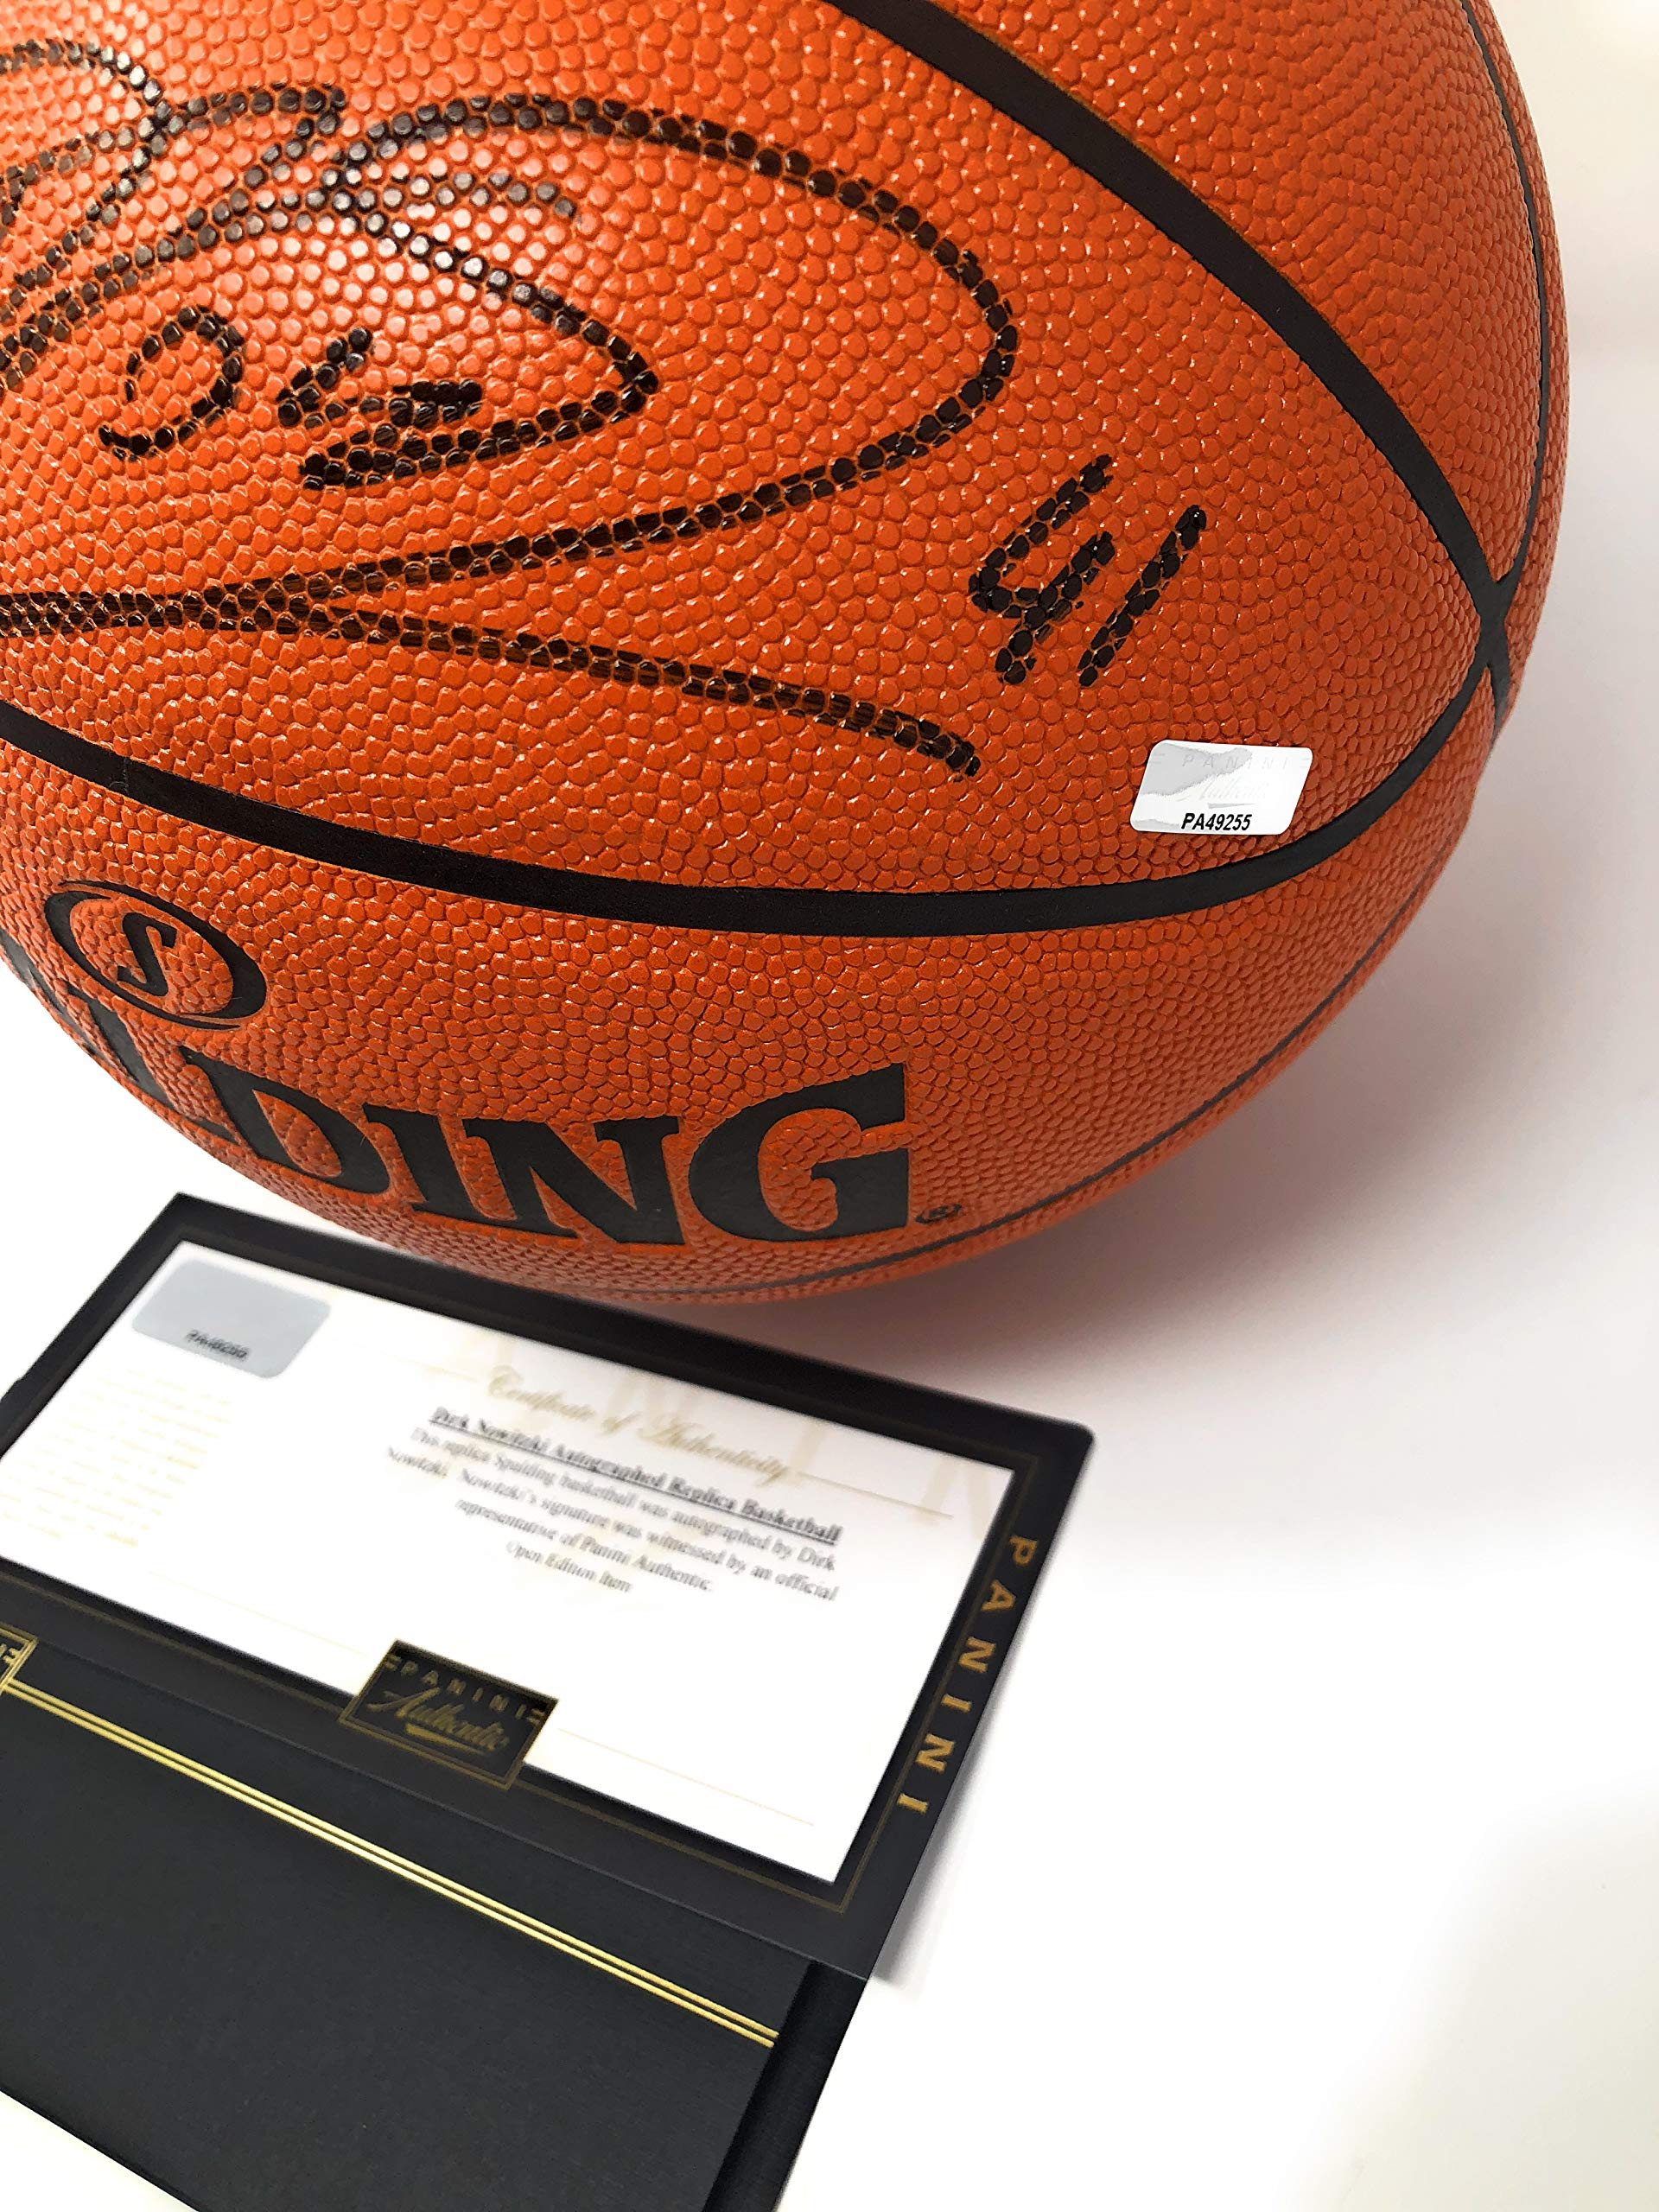 Dirk Nowitzki Dallas Mavericks Signed Autograph NBA Game Basketball Black Ink Panini Authentic Certified